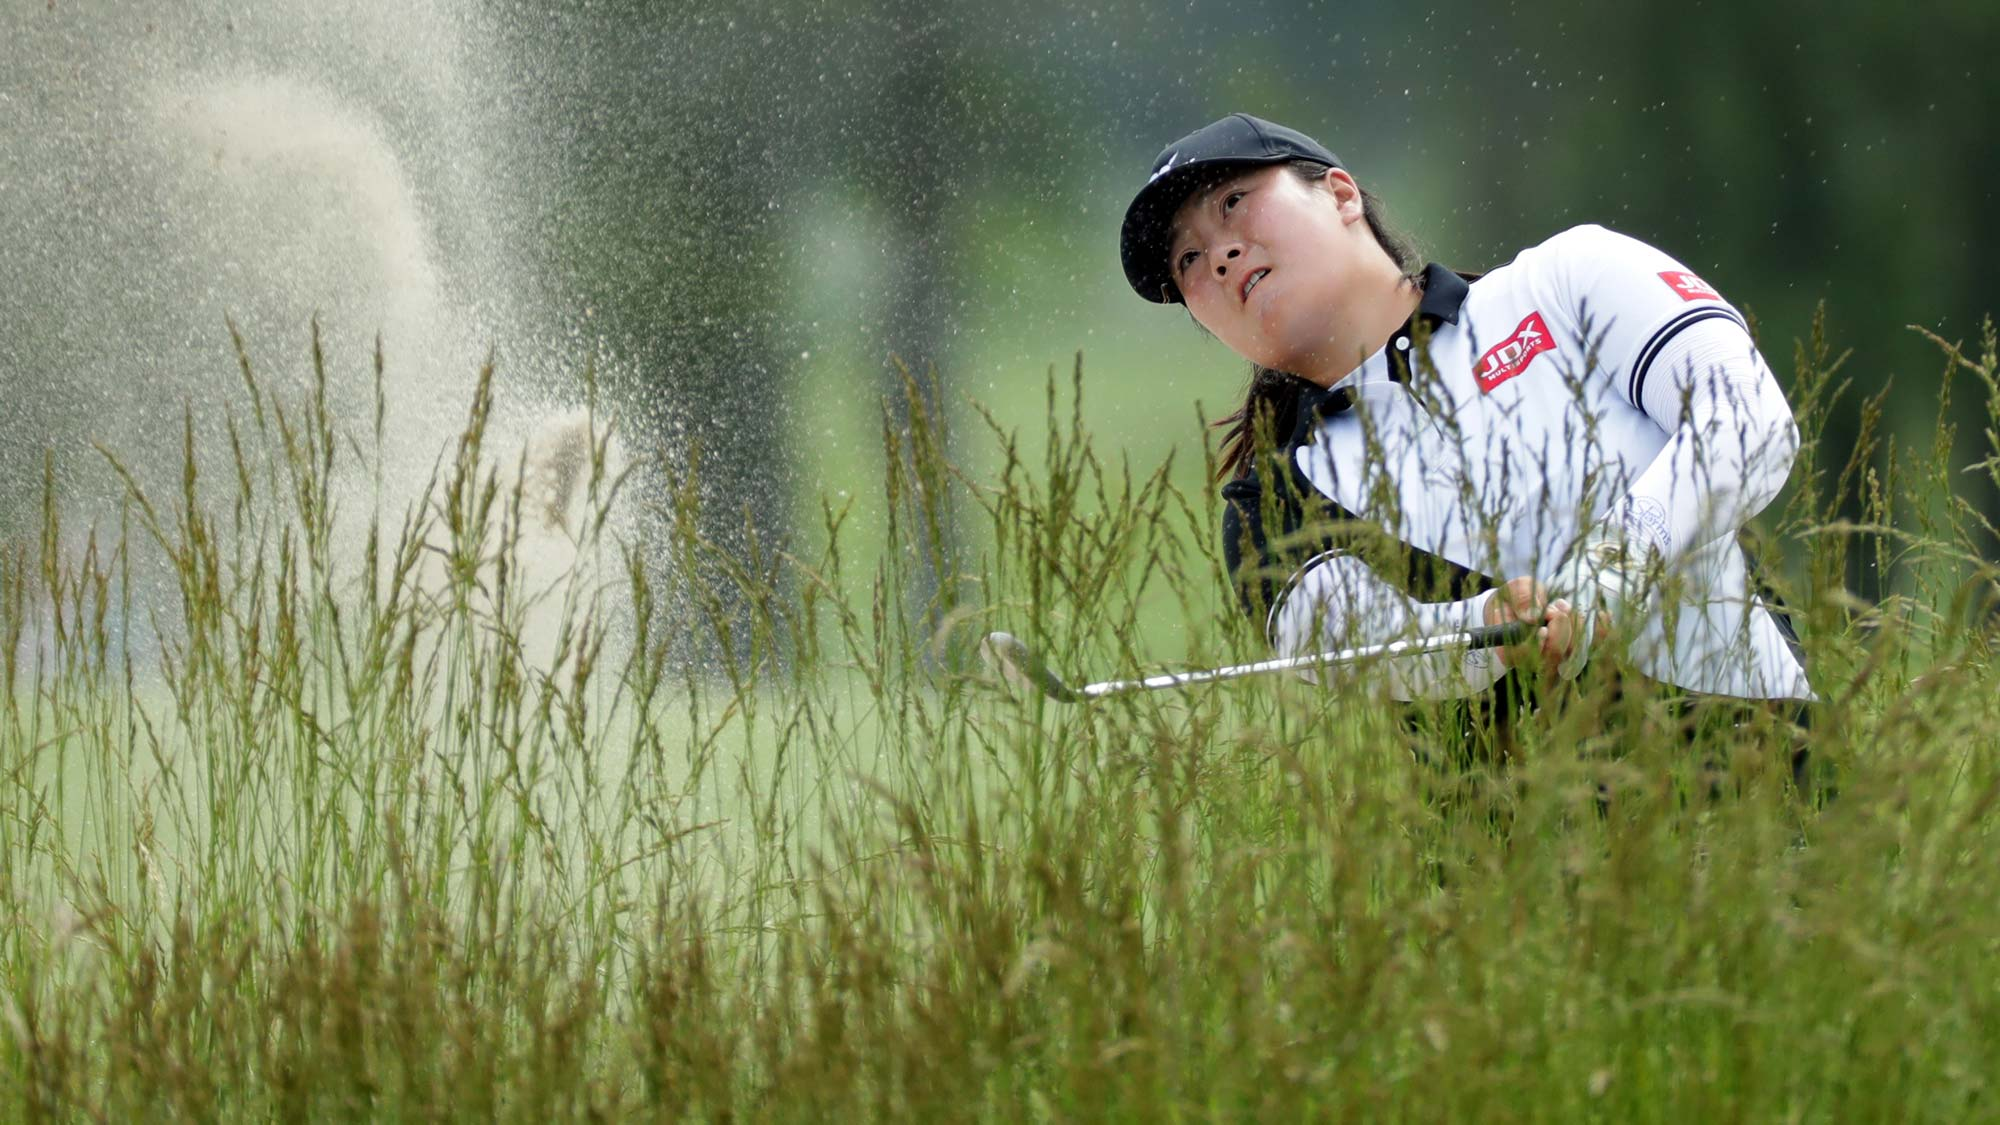 Angel Yin plays from a bunker on the fifth hole during the first round of the ShopRite LPGA Classic presented by Acer